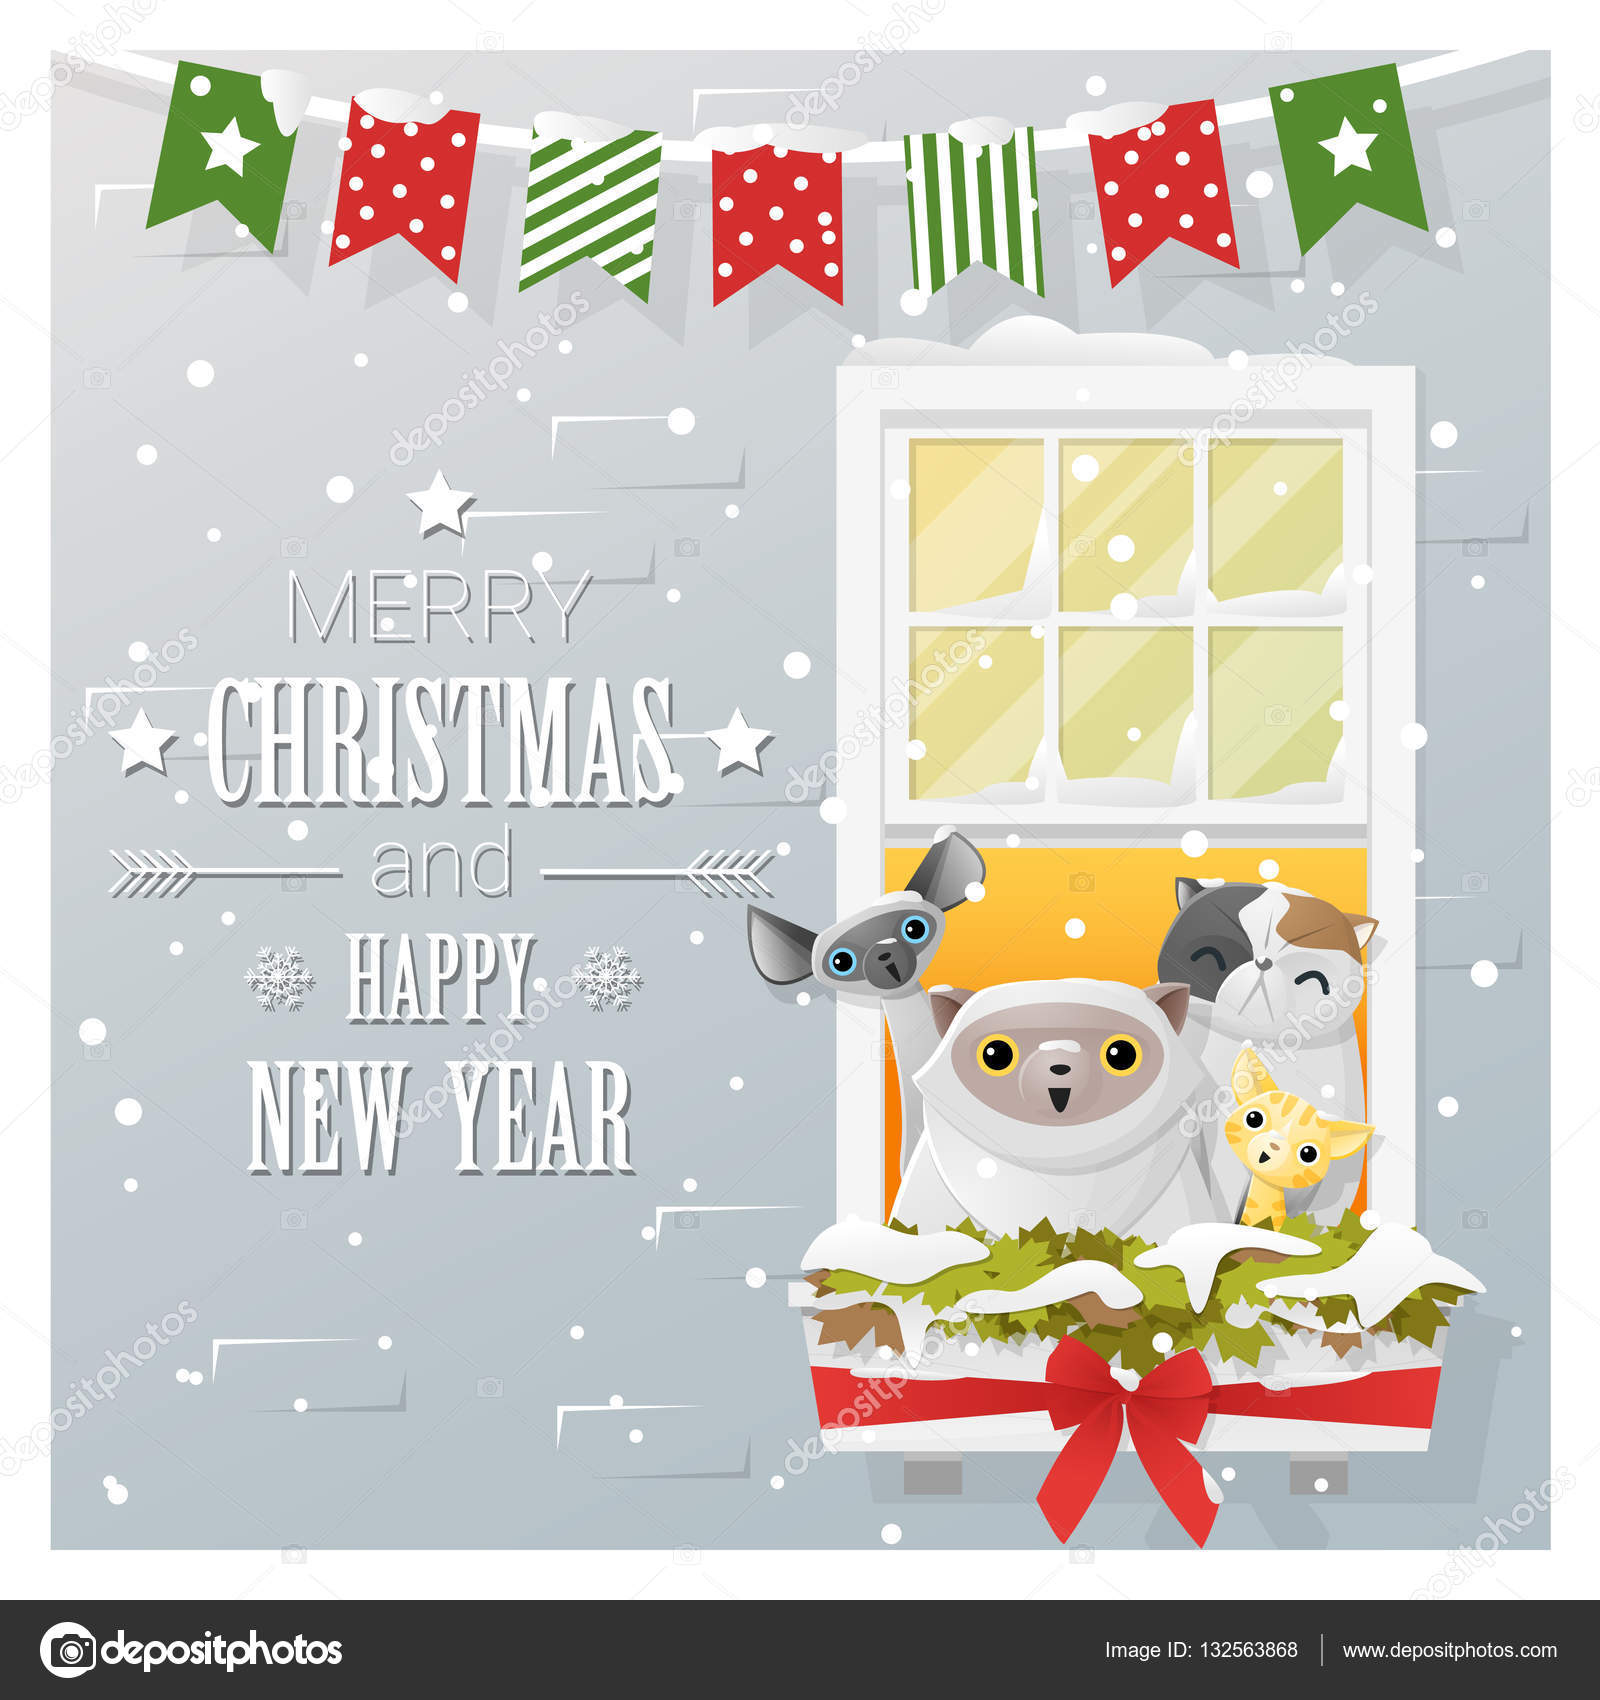 merry christmas and happy new year greeting card with cat family vector illustration